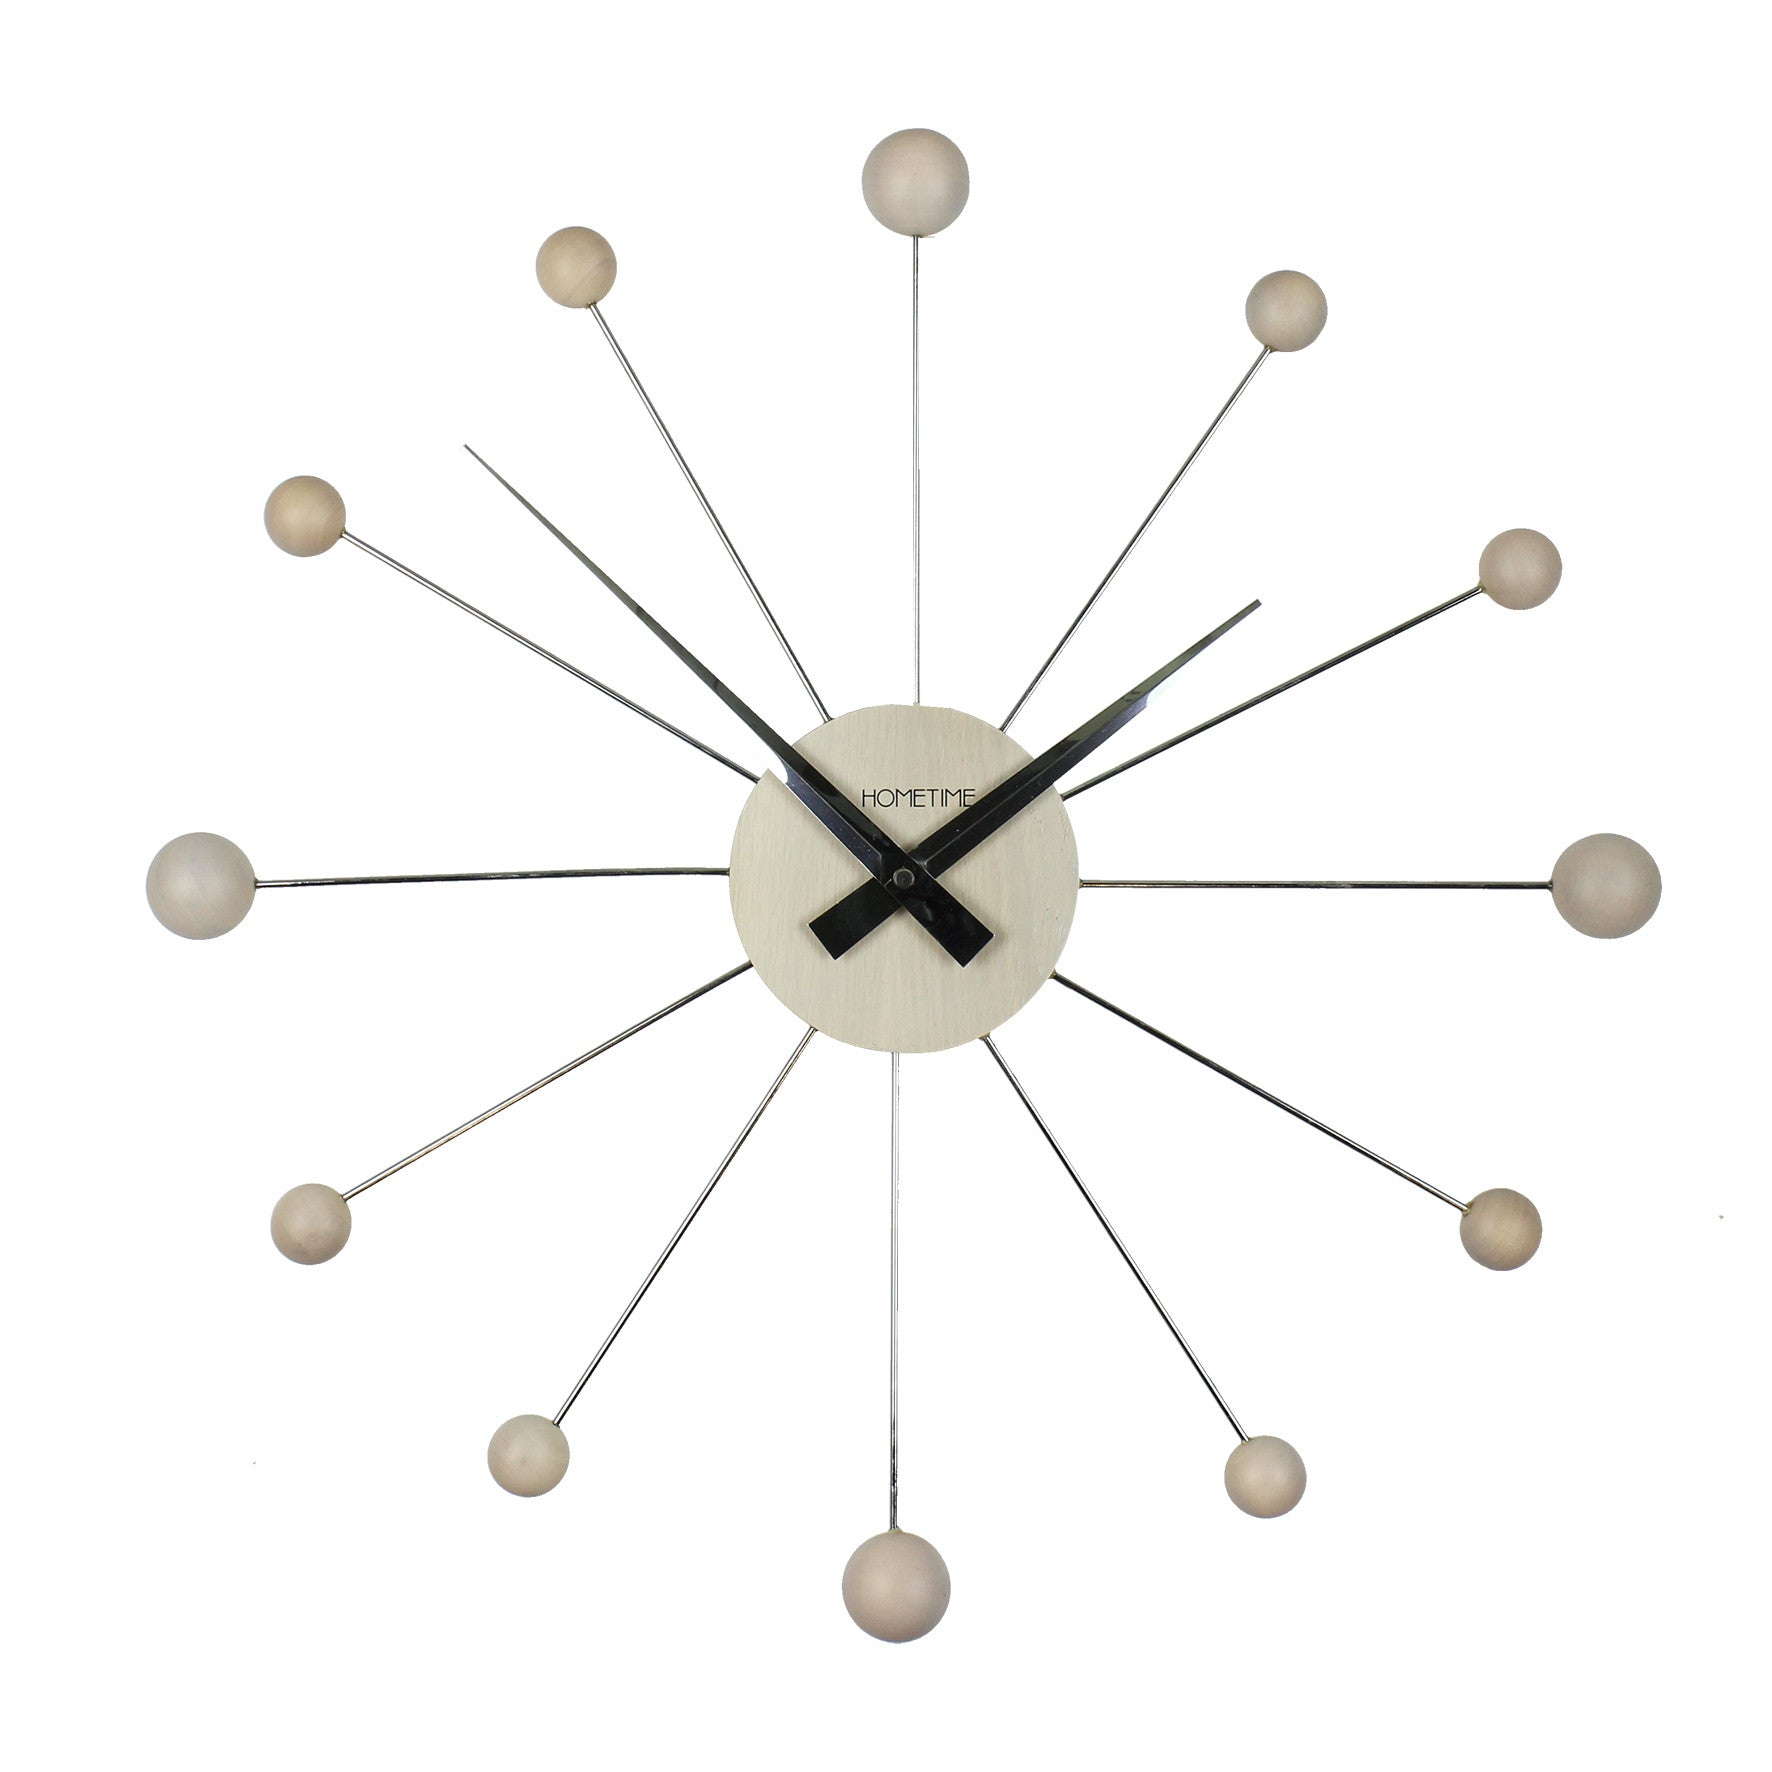 Hometime Chrome & Wooden Wall Clock Balls 50cm-W7310W - Homely Nigeria - 2